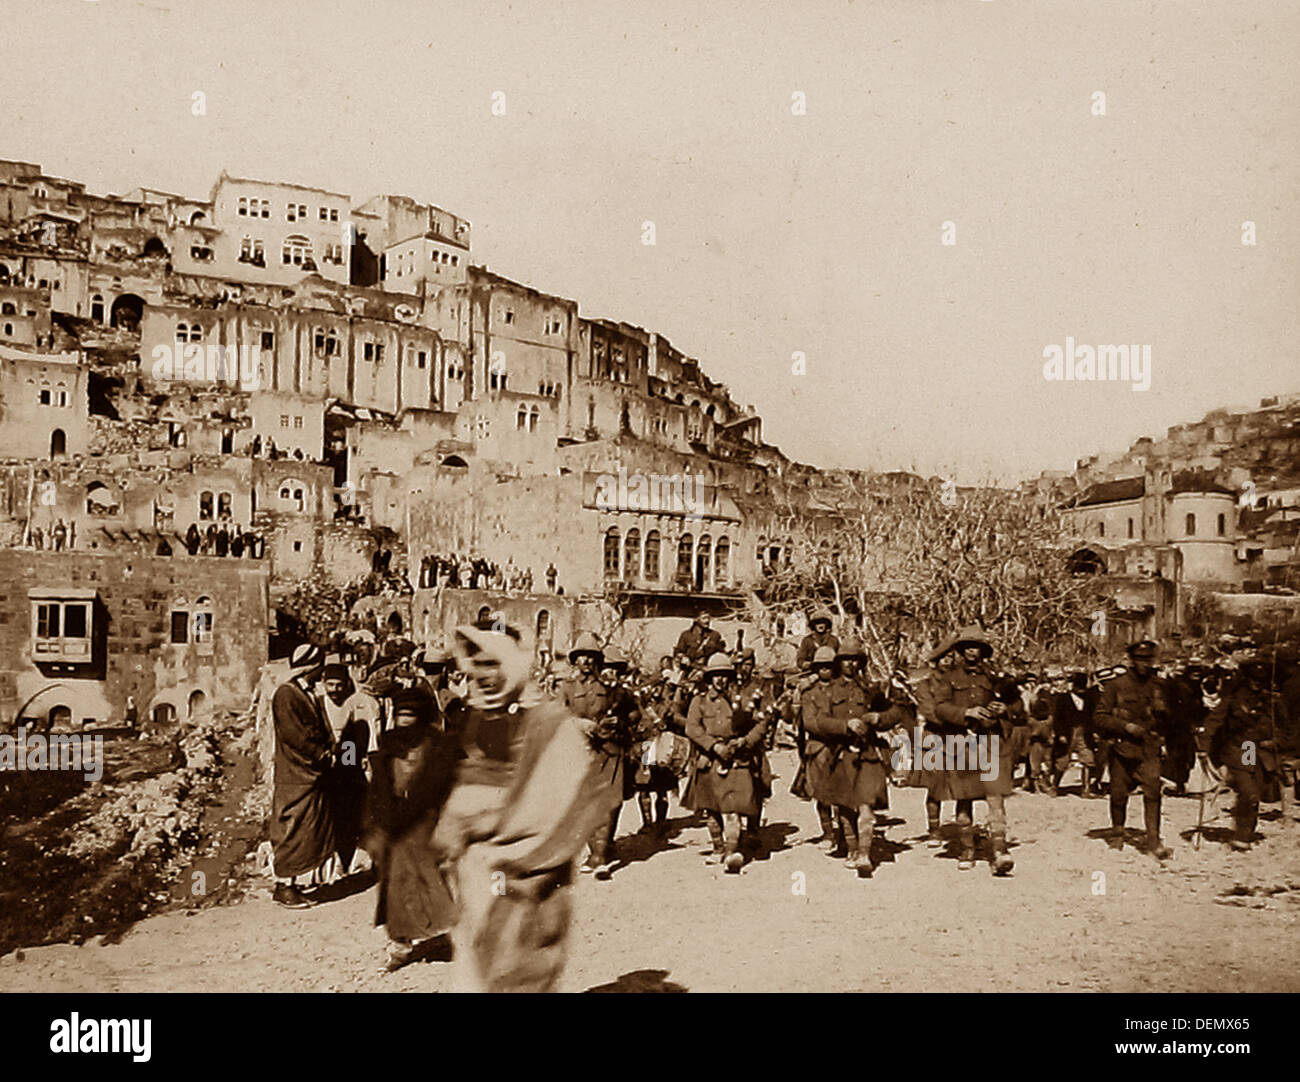 London Scottish Regiment marching through Es Salt during WW1 - Stock Image